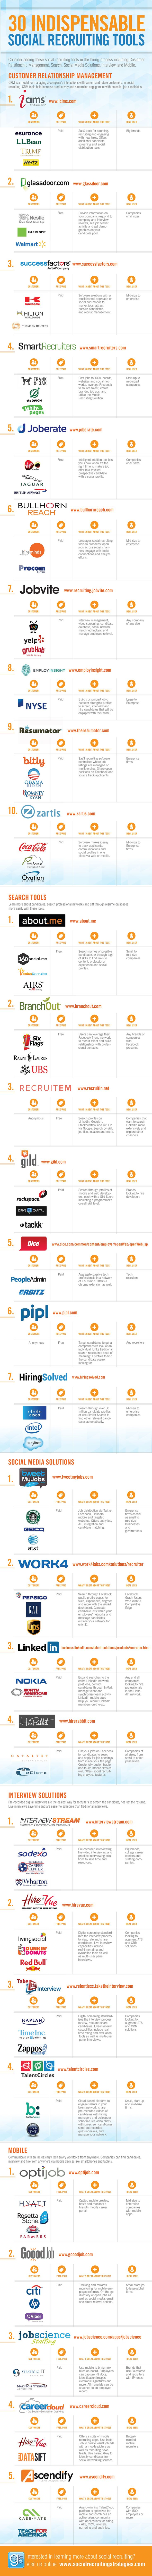 Top 30 Social Recruiting Tools [INFOGRAPHIC] on http://theundercoverrecruiter.com